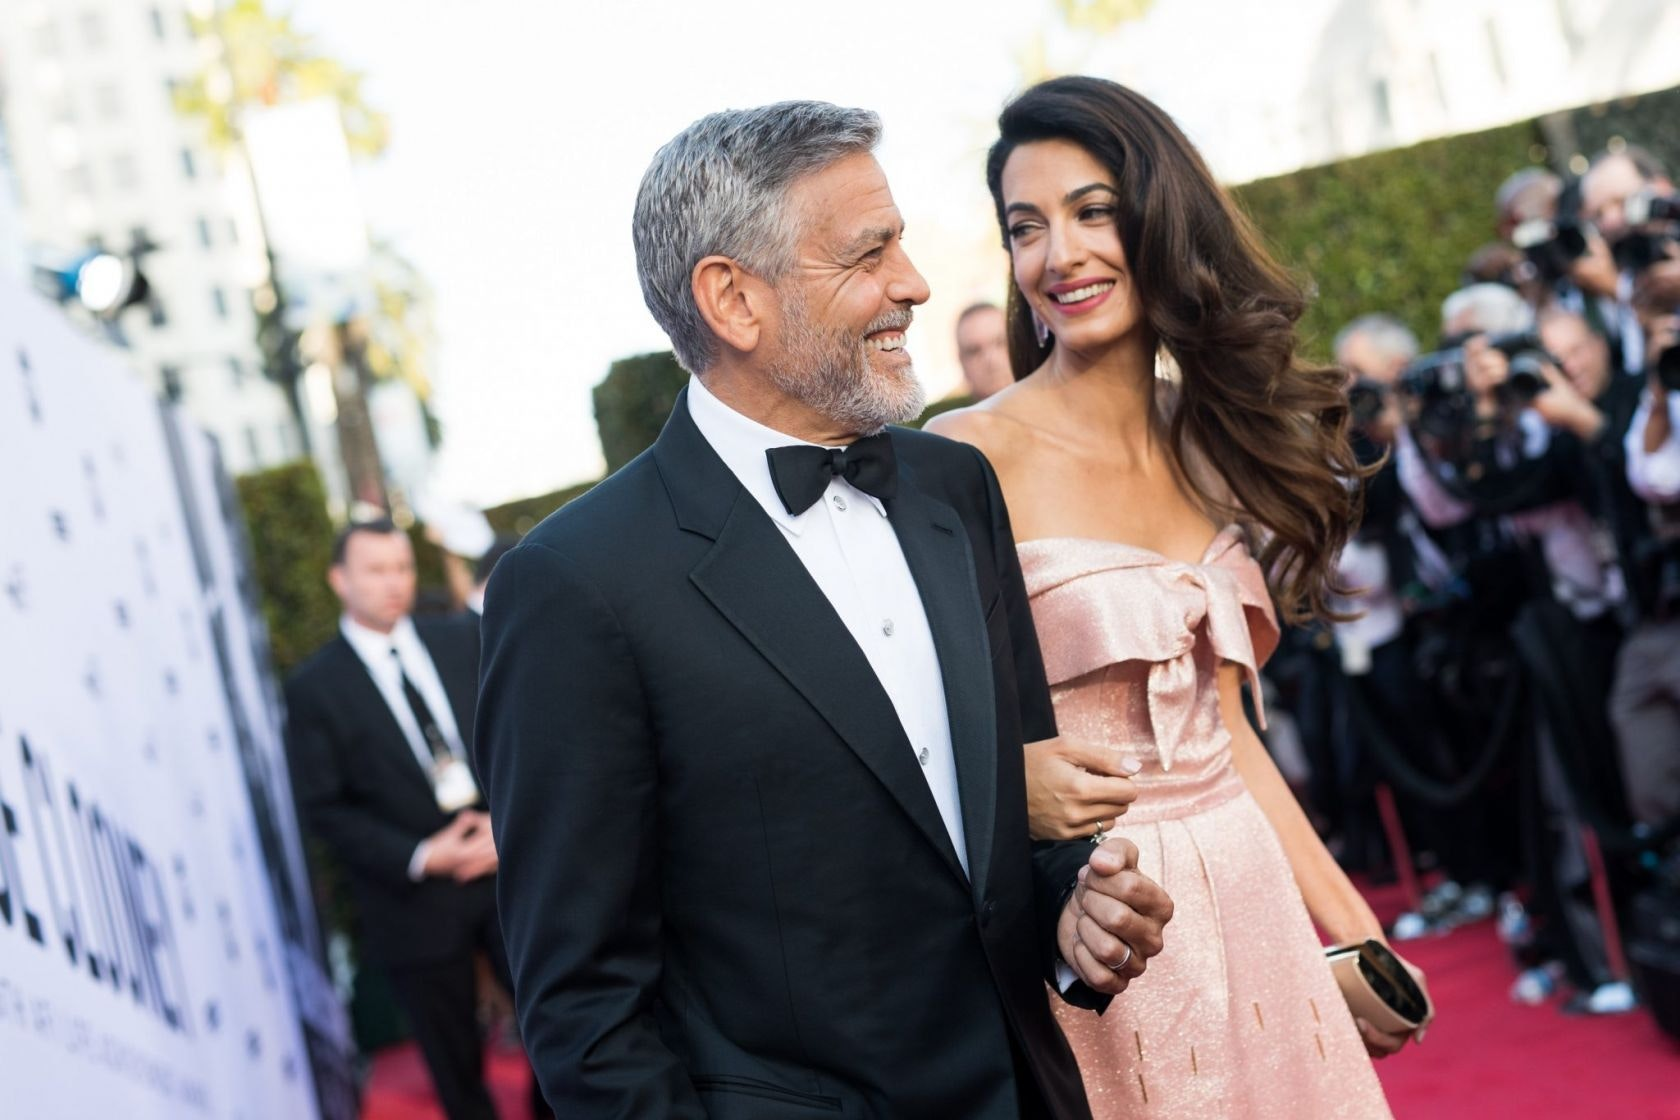 Amal Clooney speaks out against sexist' Donald Trump recommendations